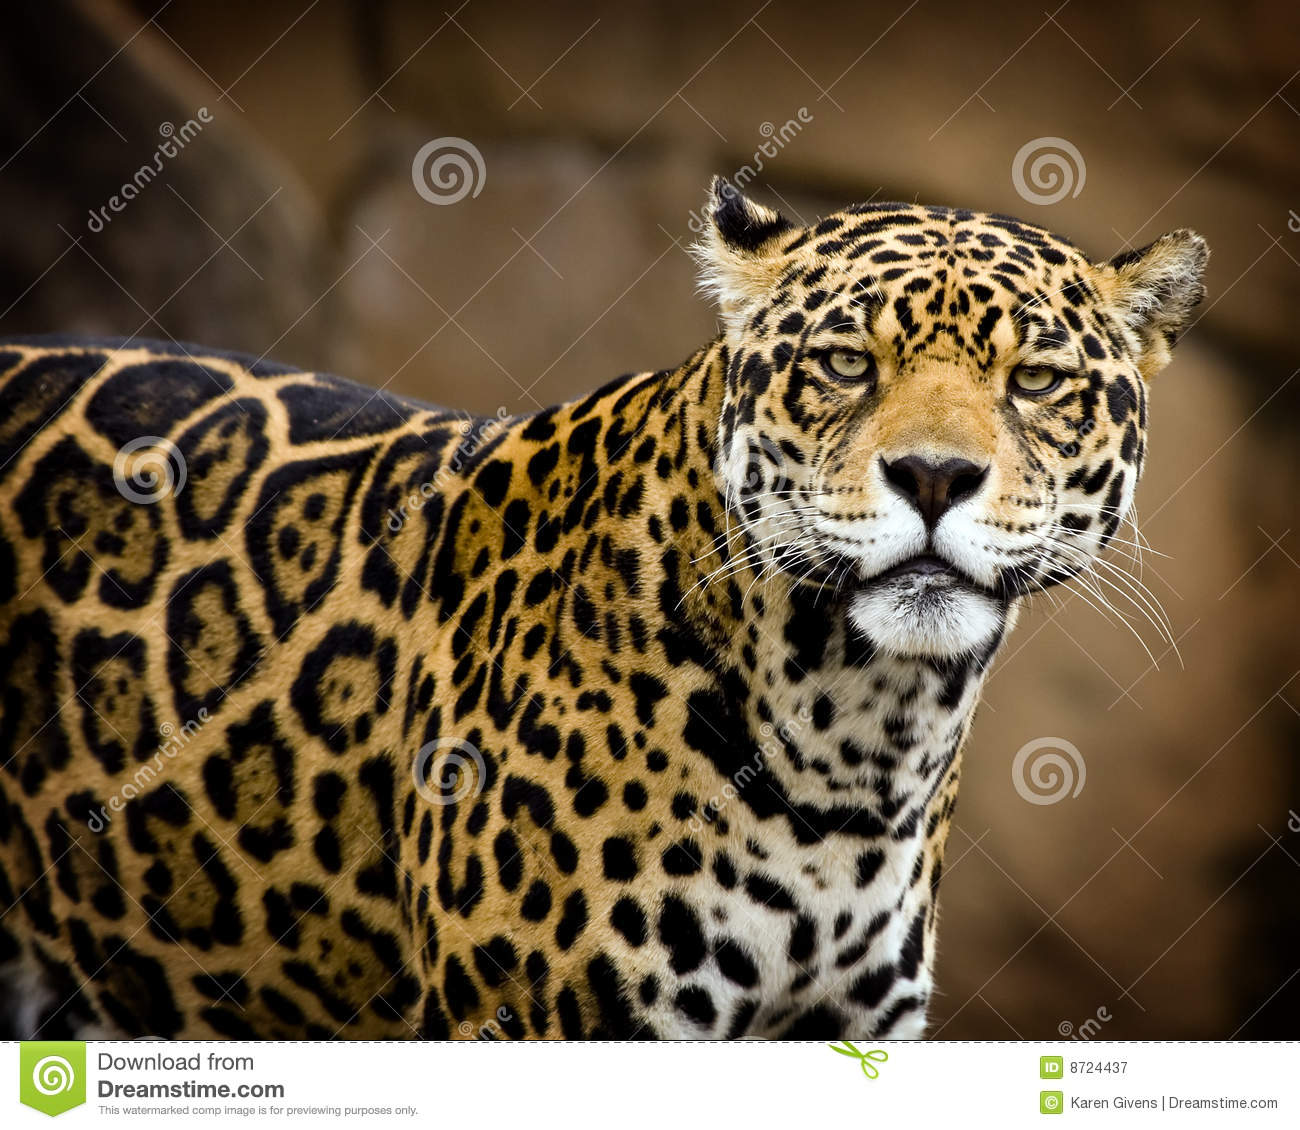 Jaguar Growling: Jaguar Portrait Stock Image. Image Of Hunter, Animal